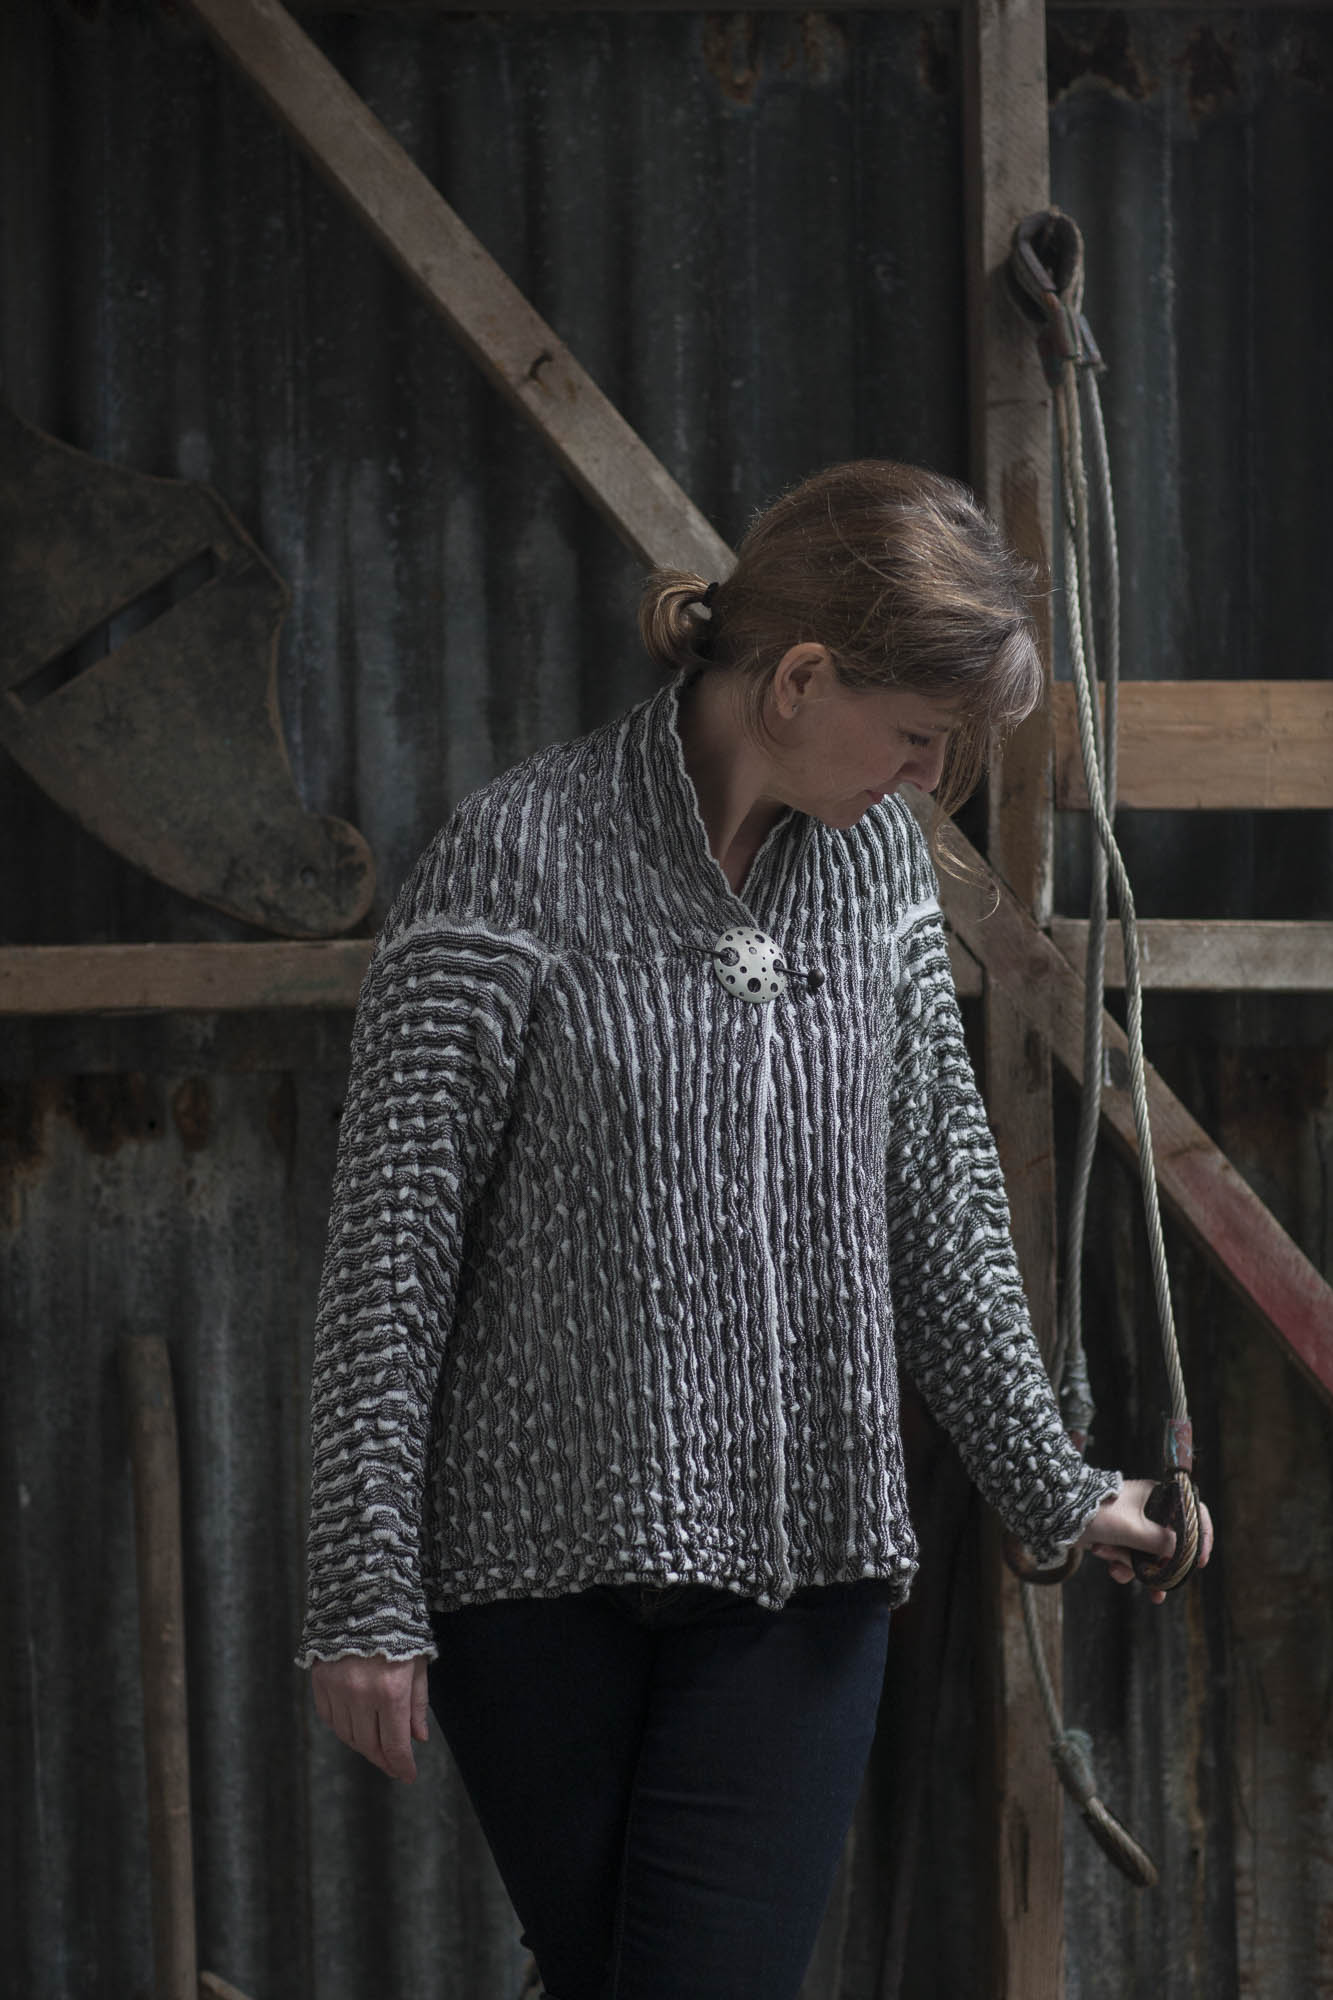 Modern Shetland knitwear - model wears ridged knitted jacket in chalky white and greys, pinned at neck